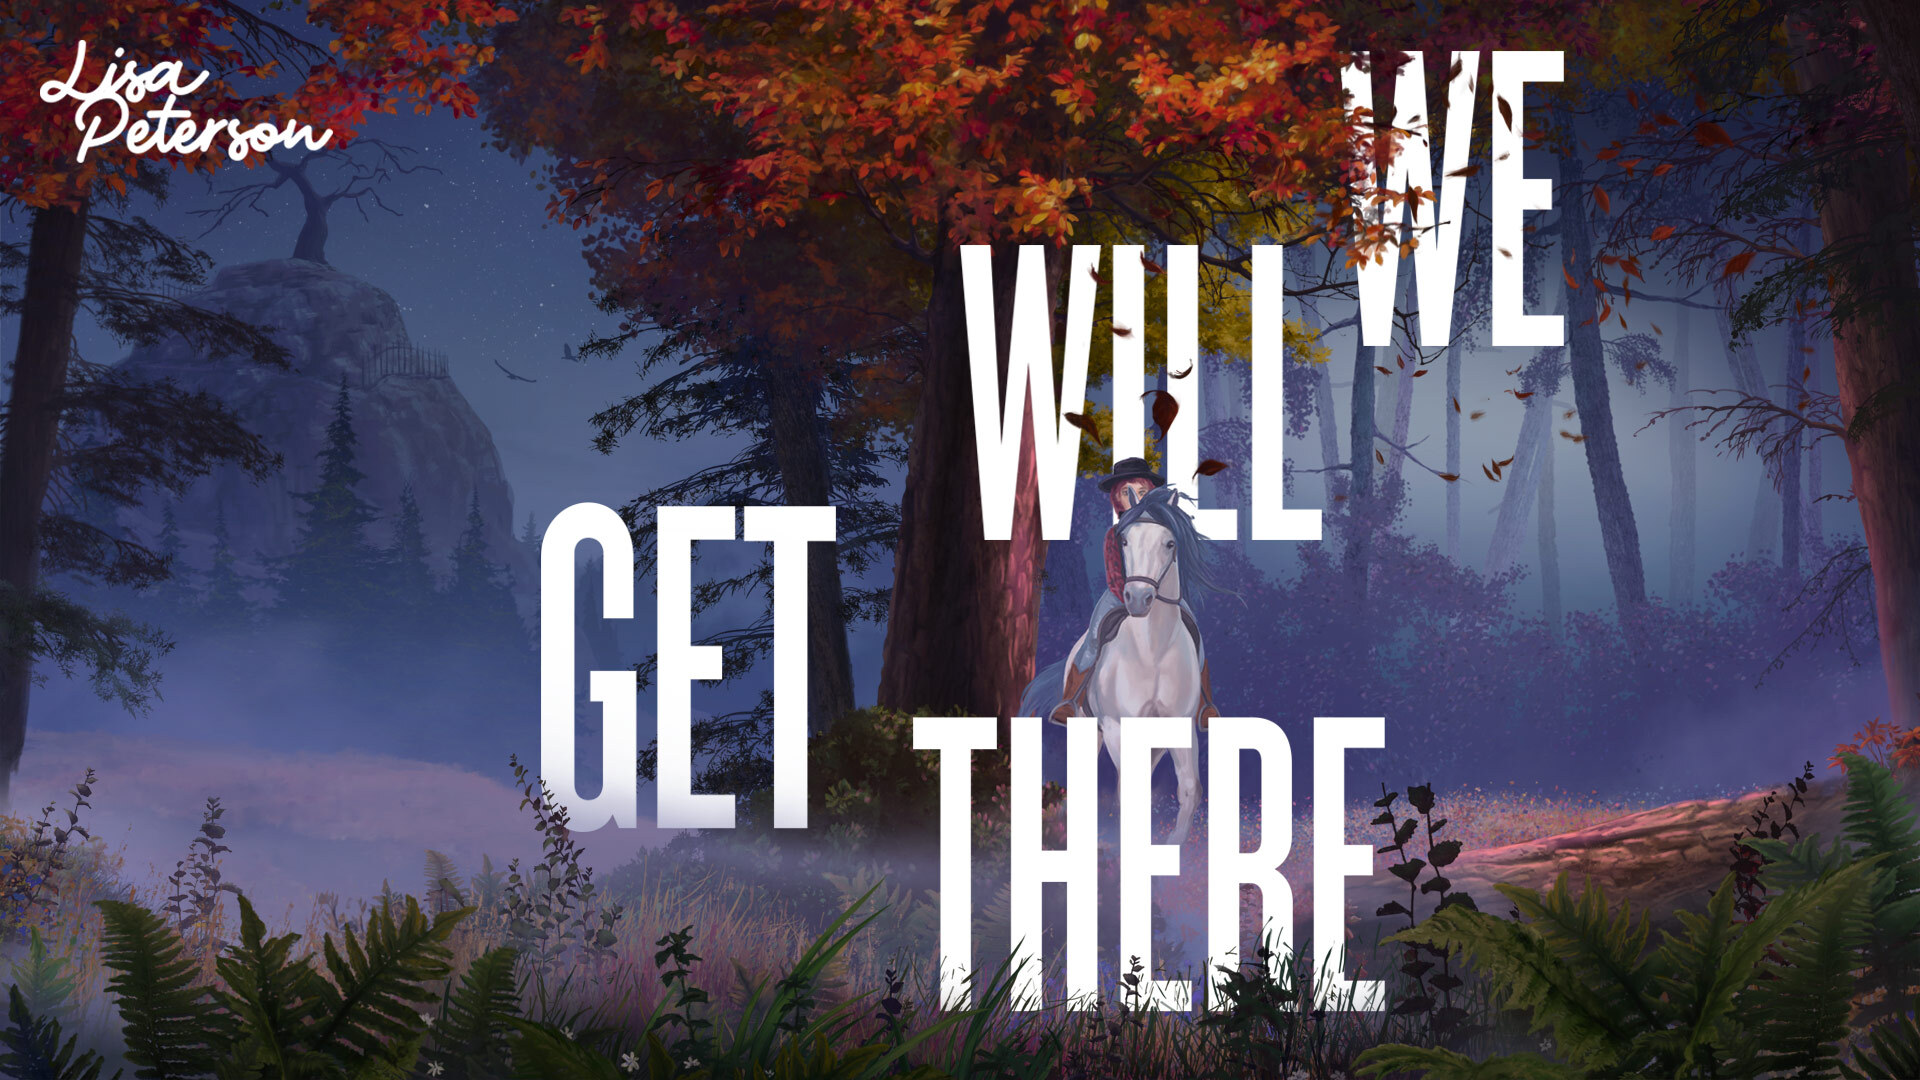 We Will Get There - Lisa Peterson